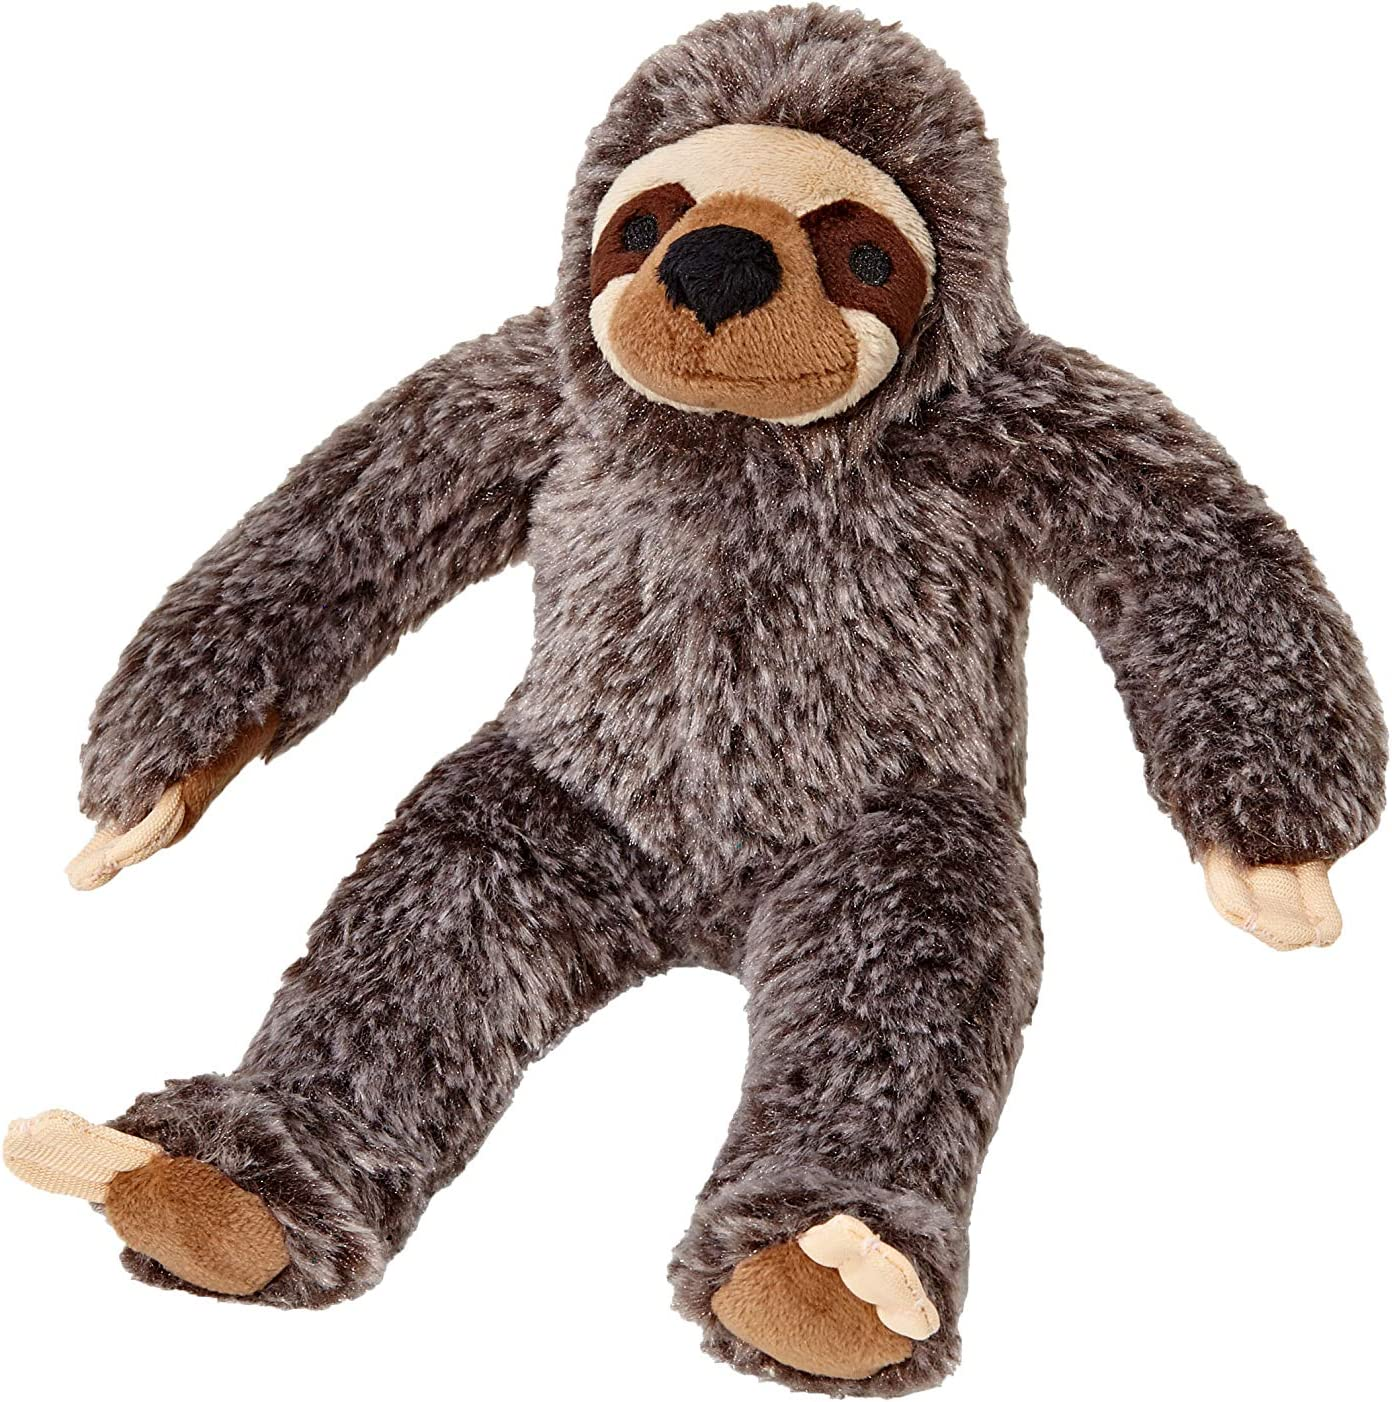 15-Inches Large Fluff and Tuff Tico Sloth Plush Dog Toy